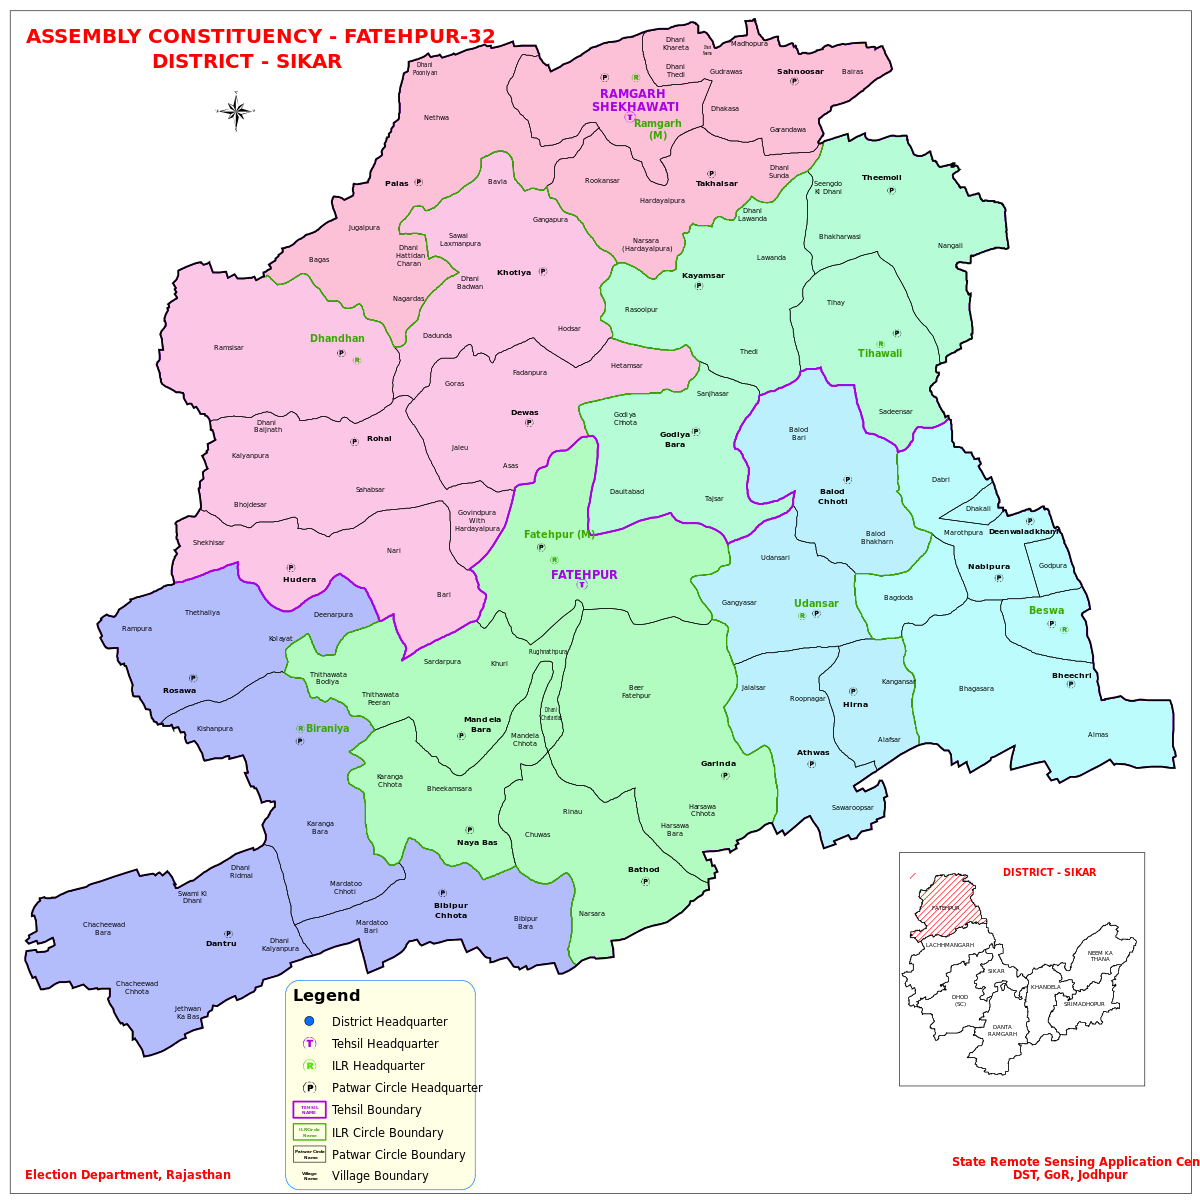 Fatehpur Rajasthan Assembly Constituency Wikipedia